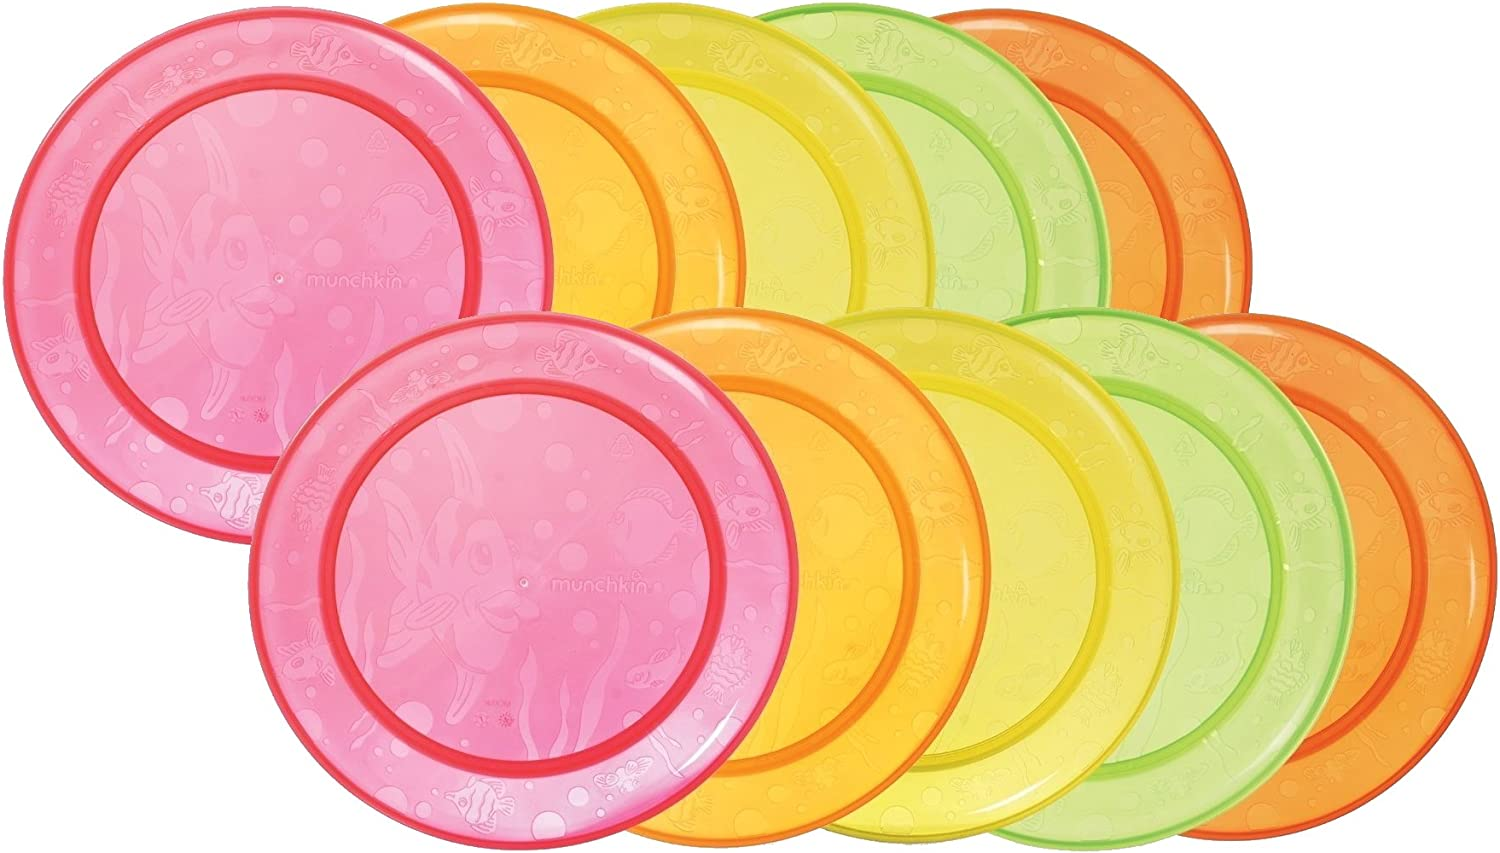 Munchkin 10 Pack Multi Plate Colors May Vary